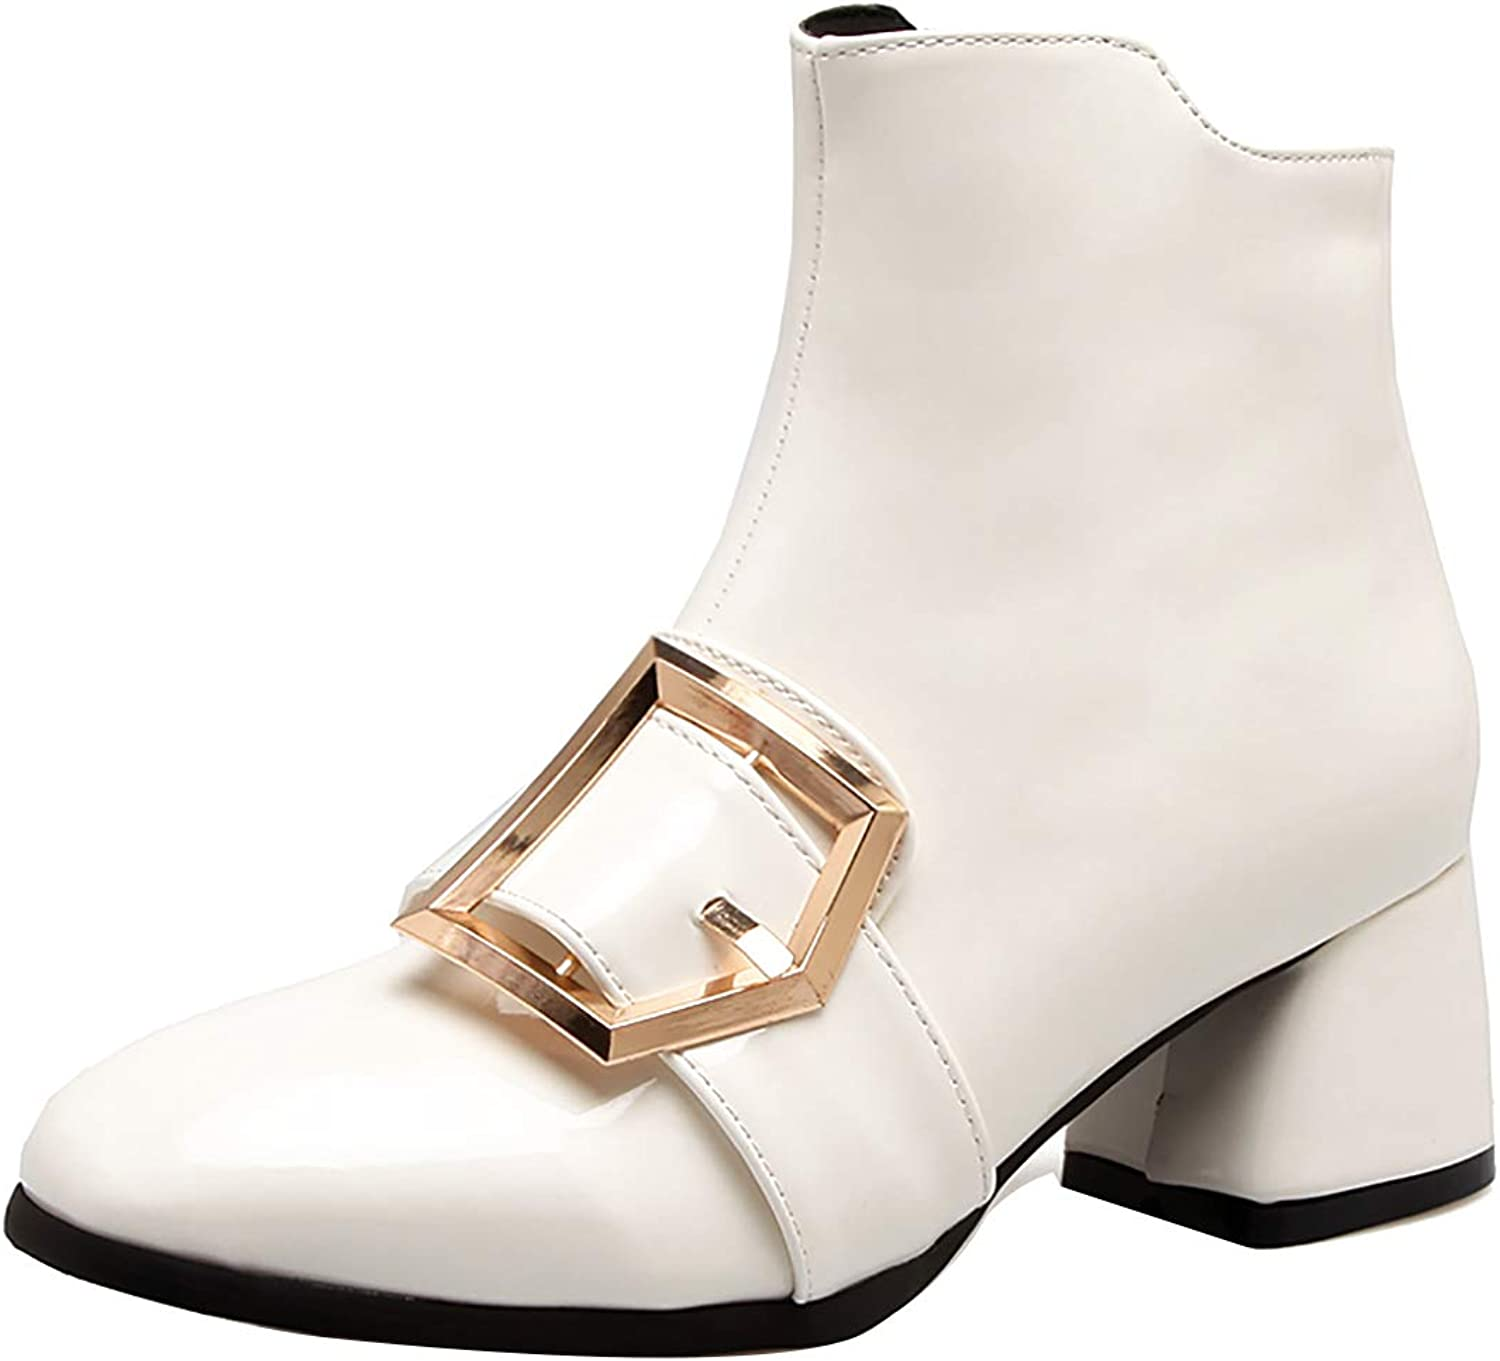 Jushee Womens Juintr 5.5 cm mid-Heel Ankle Zipper Patent-Leather Boots